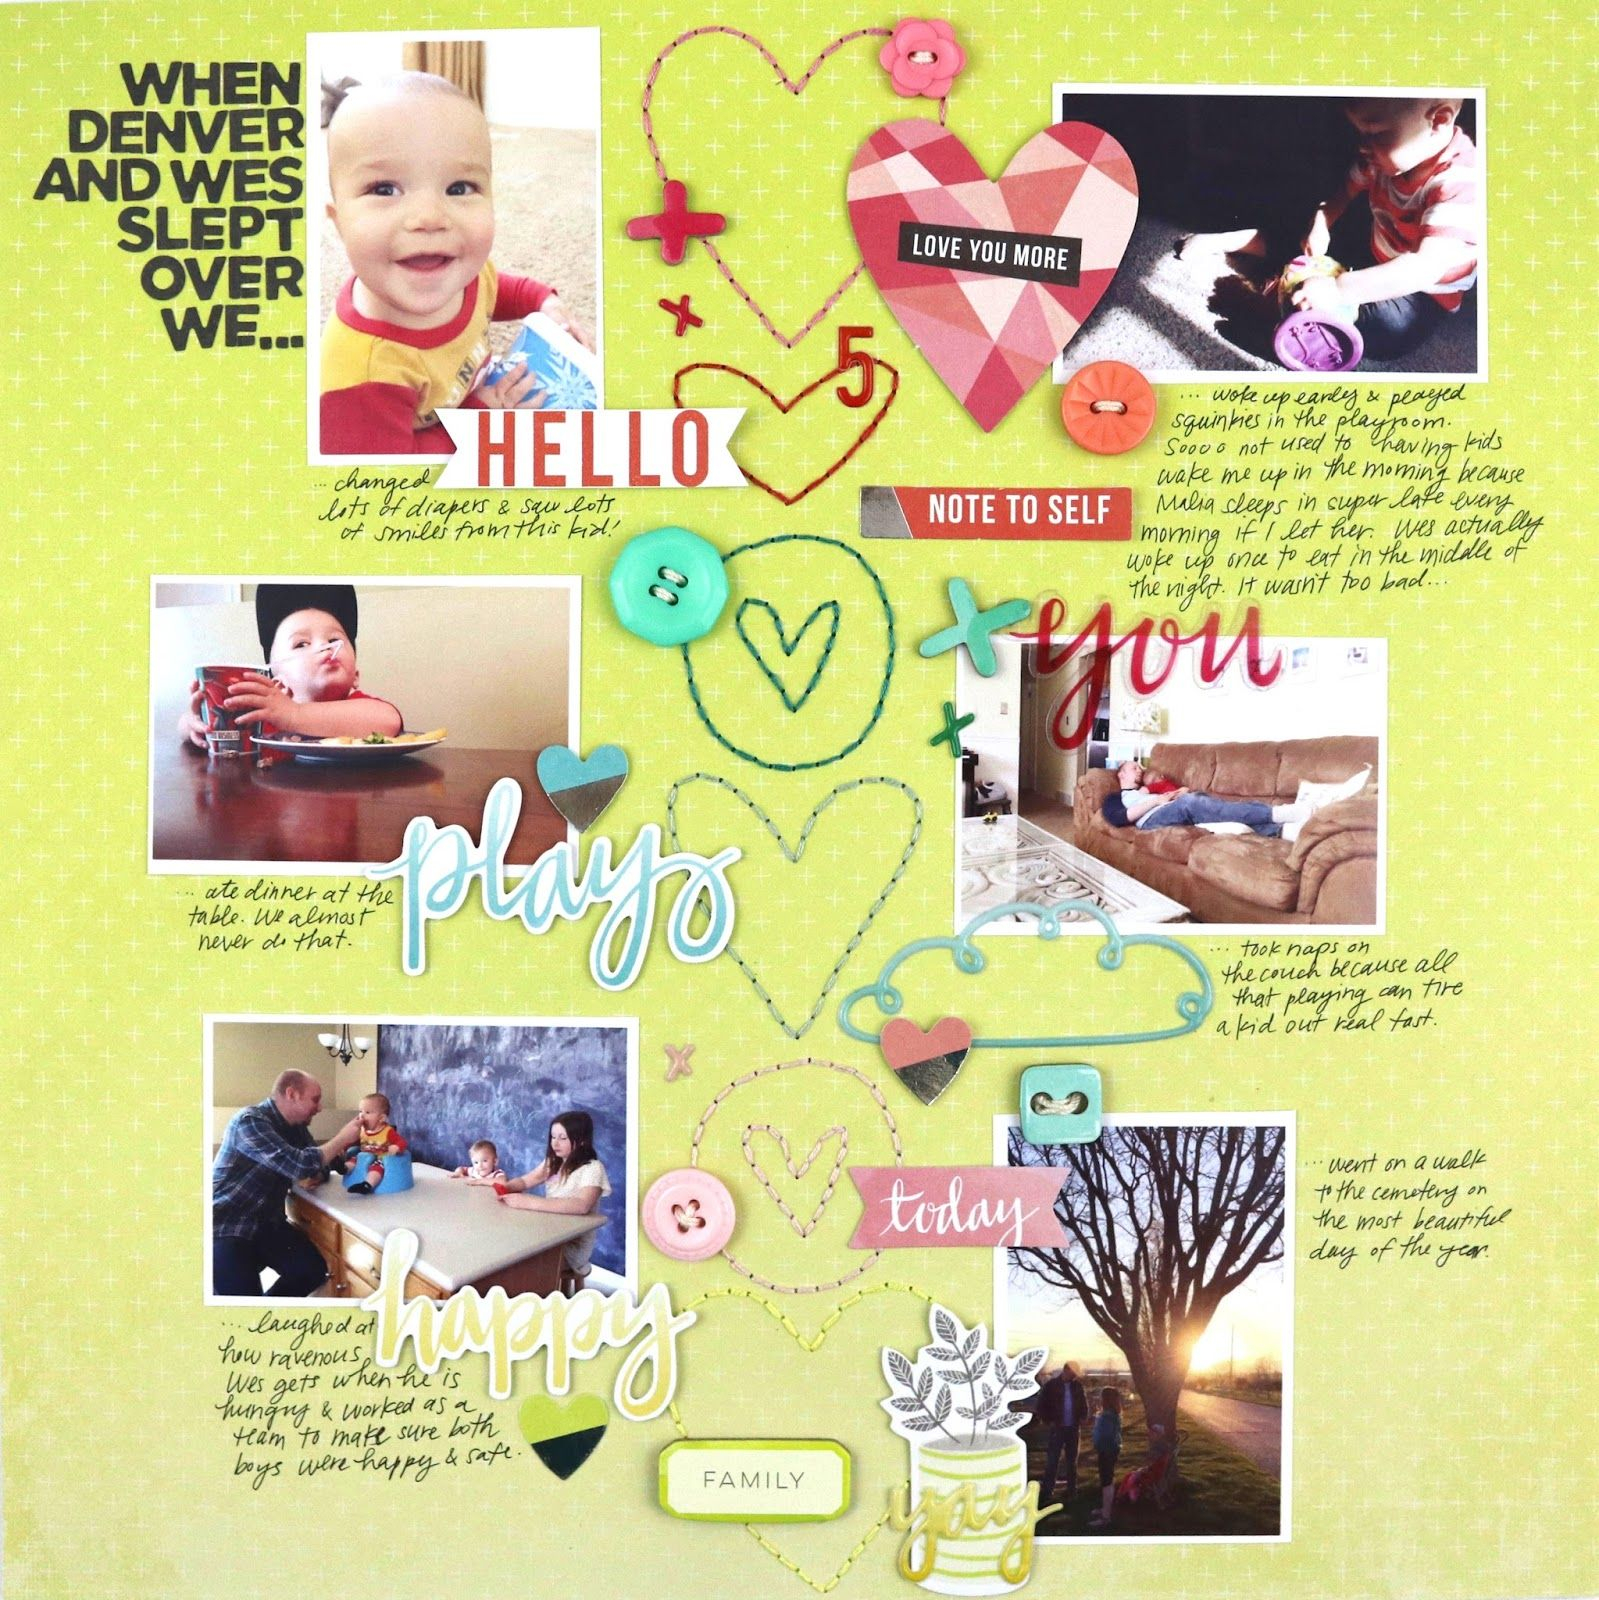 Things That Matter Collection Disconnection Fancy Free 5 Sleepover Scrapbook Layout Sketches My Scrapbook Baby Boy Scrapbook